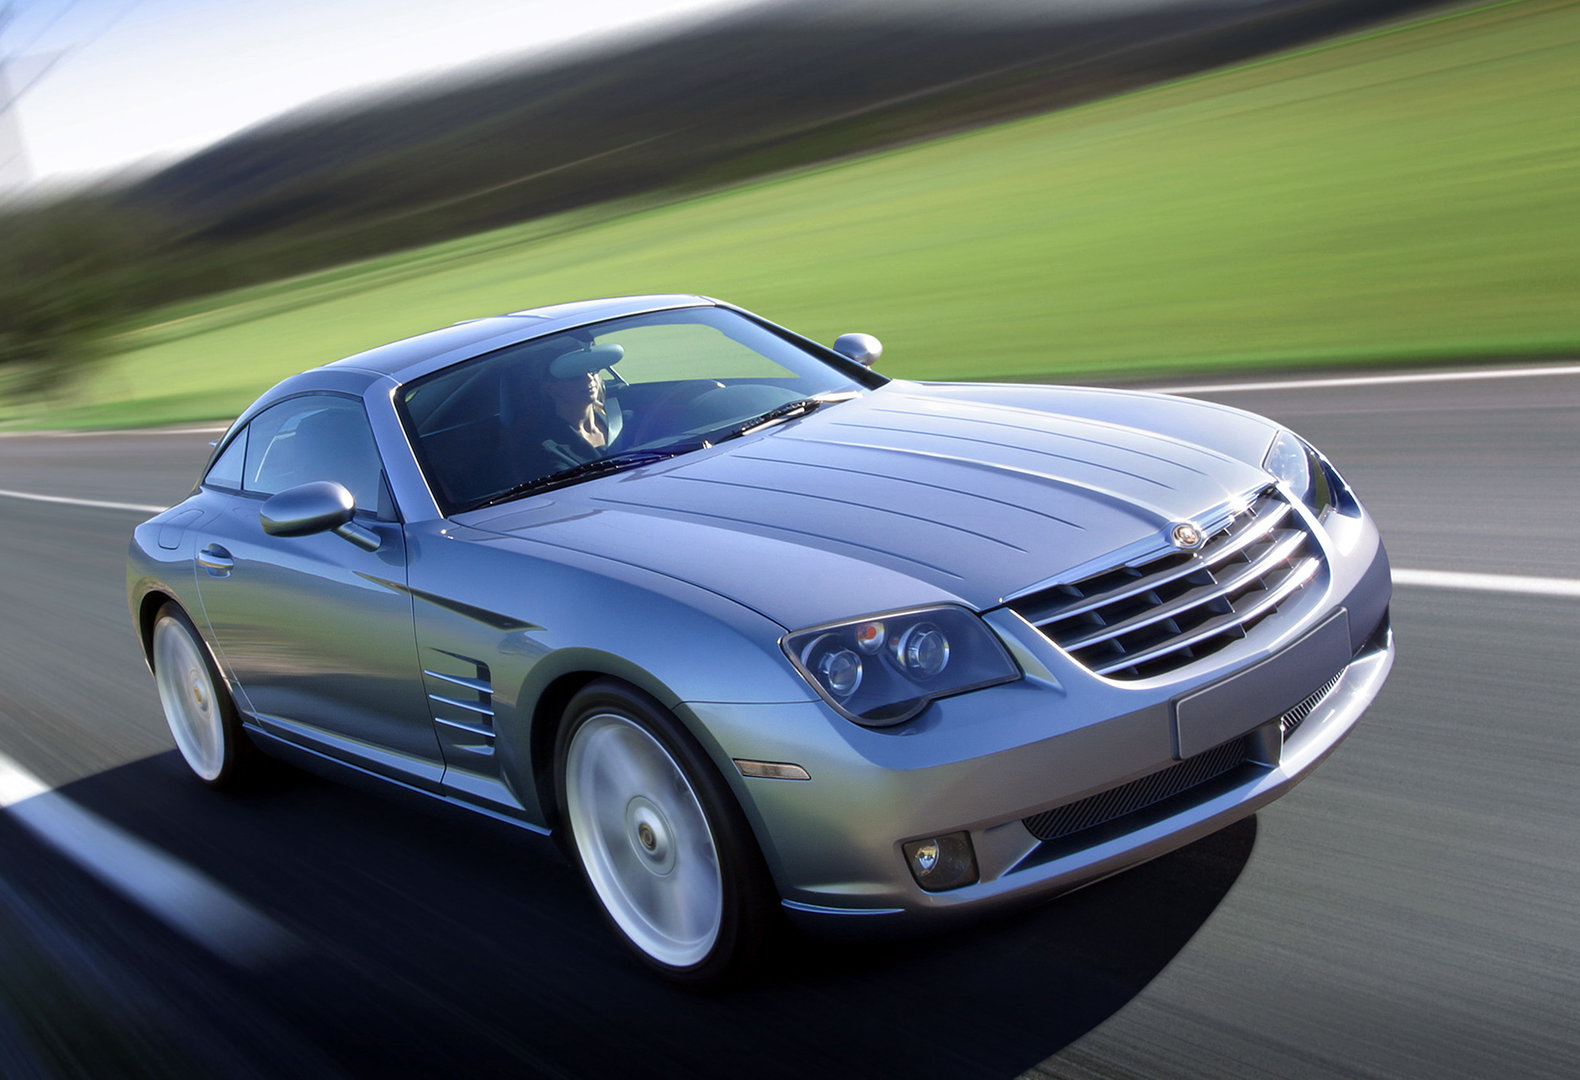 Chrysler Crossfire Limited Coupe 3